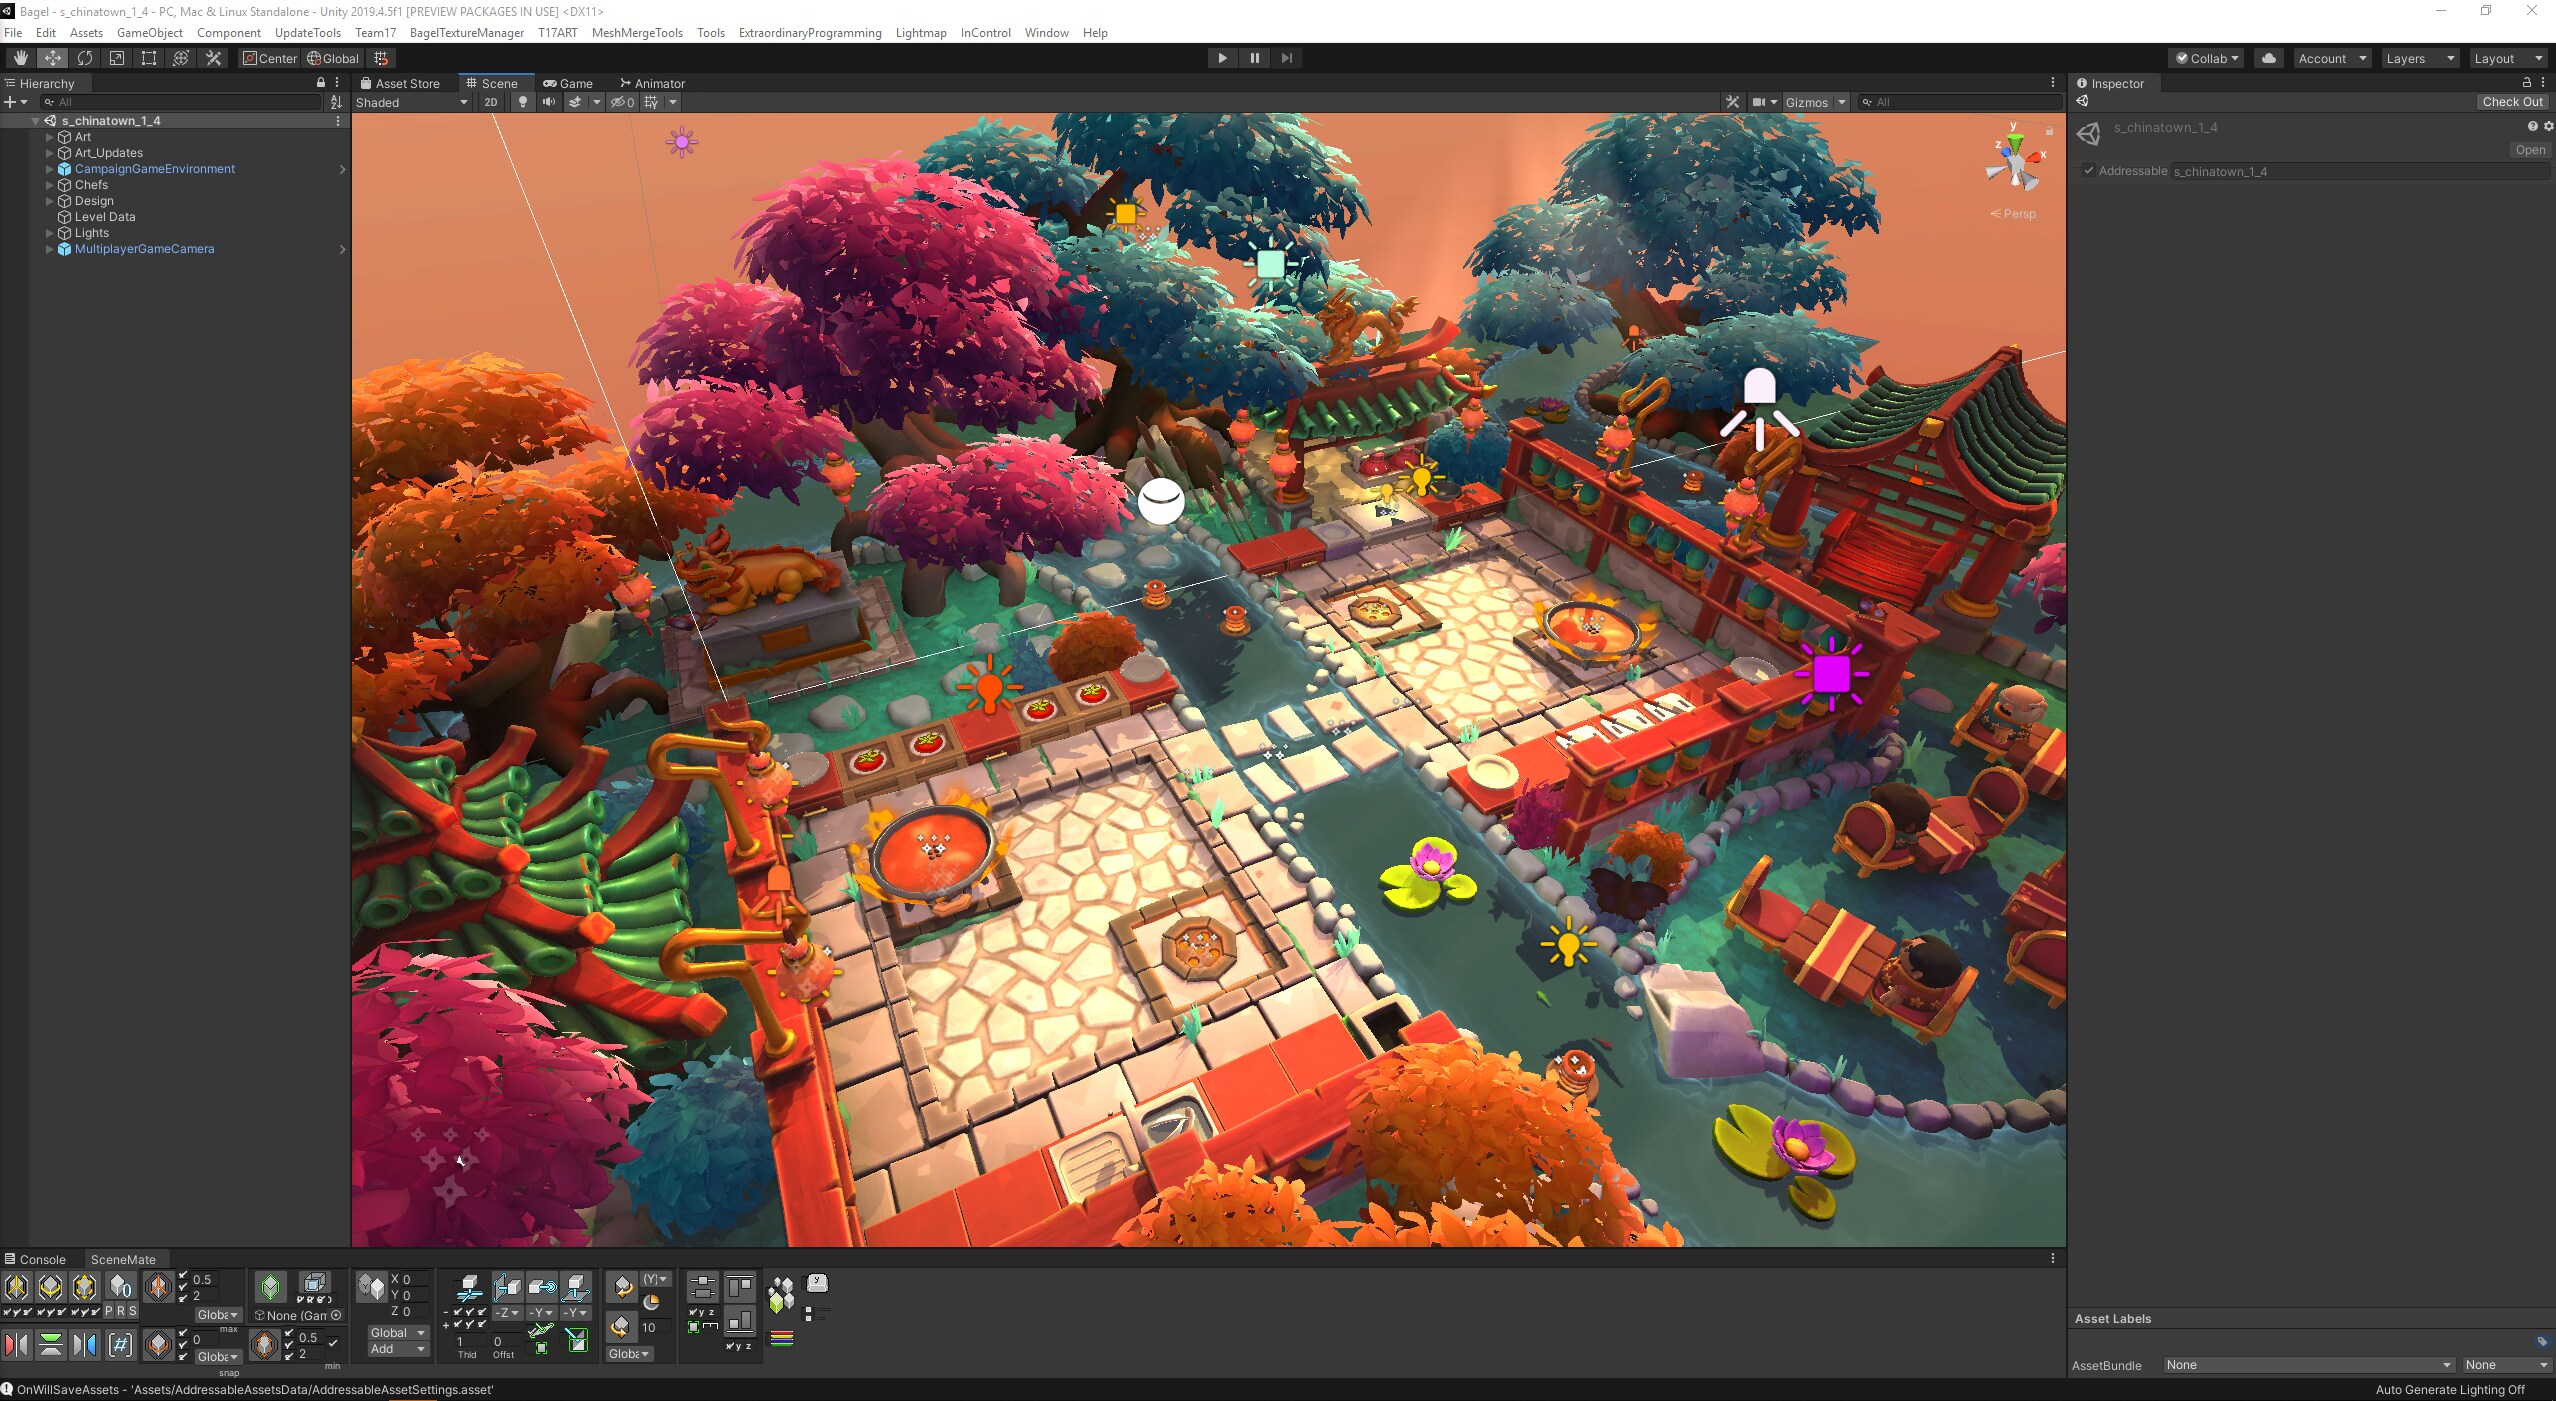 screenshot of Overcooked DLC level in Unity editor